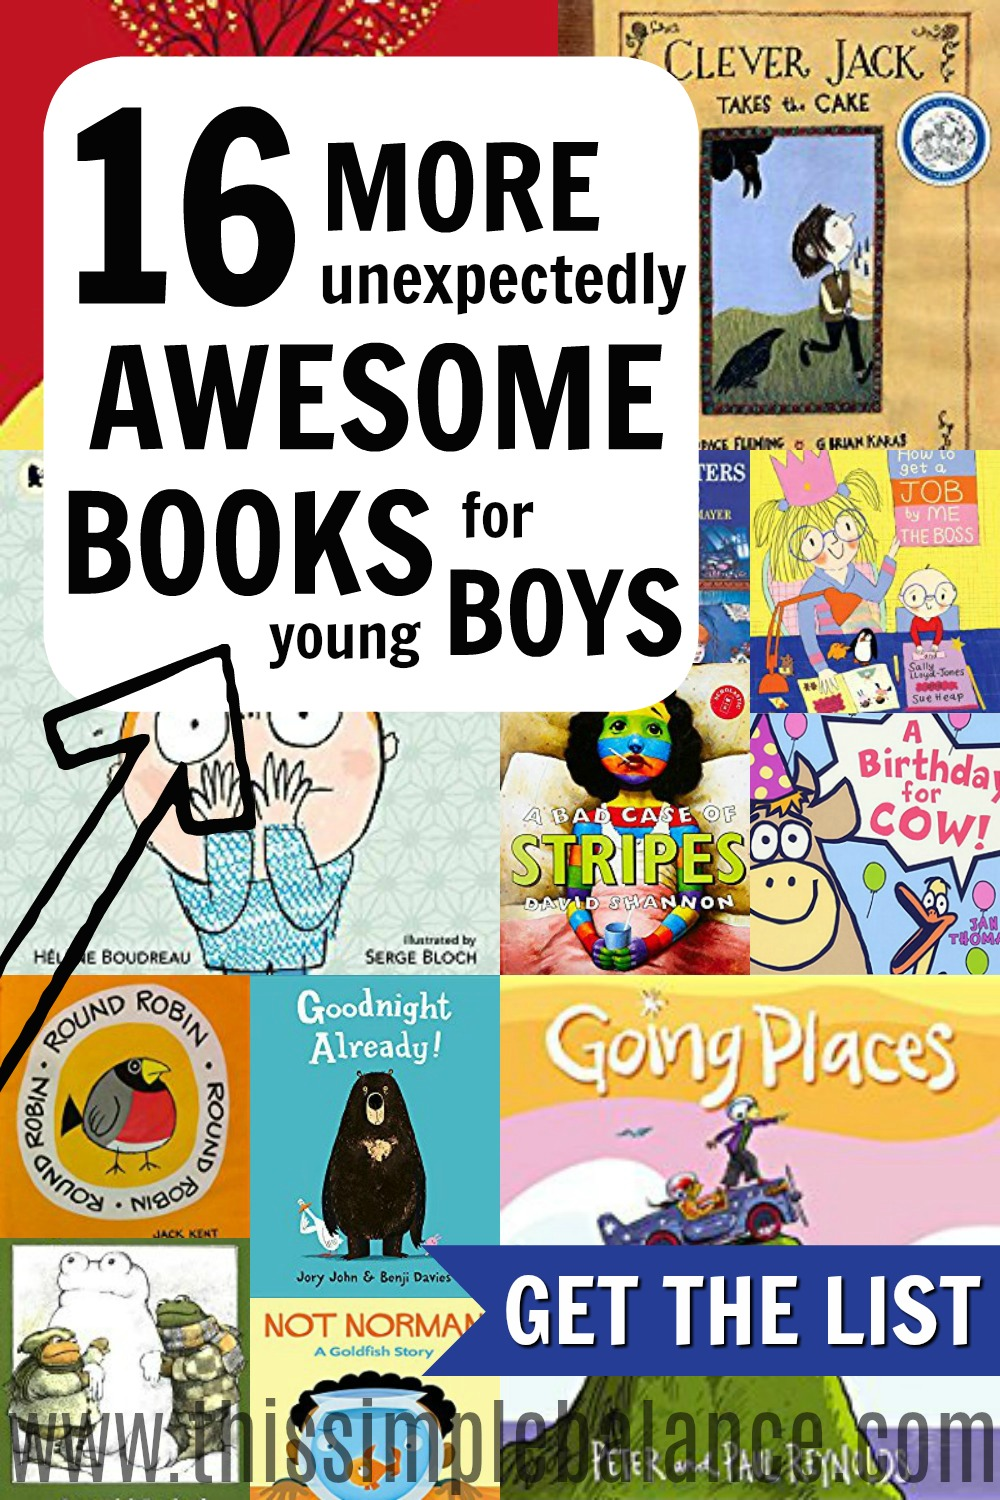 Do you love reading to your young boys but have a hard time choosing books they will really love? These 16 books are books my boys asked for OVER and OVER again. They loved these books! Plus, you can get a convenient, printable list to take with you to the library. Don't waste your time on mediocre books when you can be reading great ones you KNOW your boys will love. #booklists #booksforyoungboys